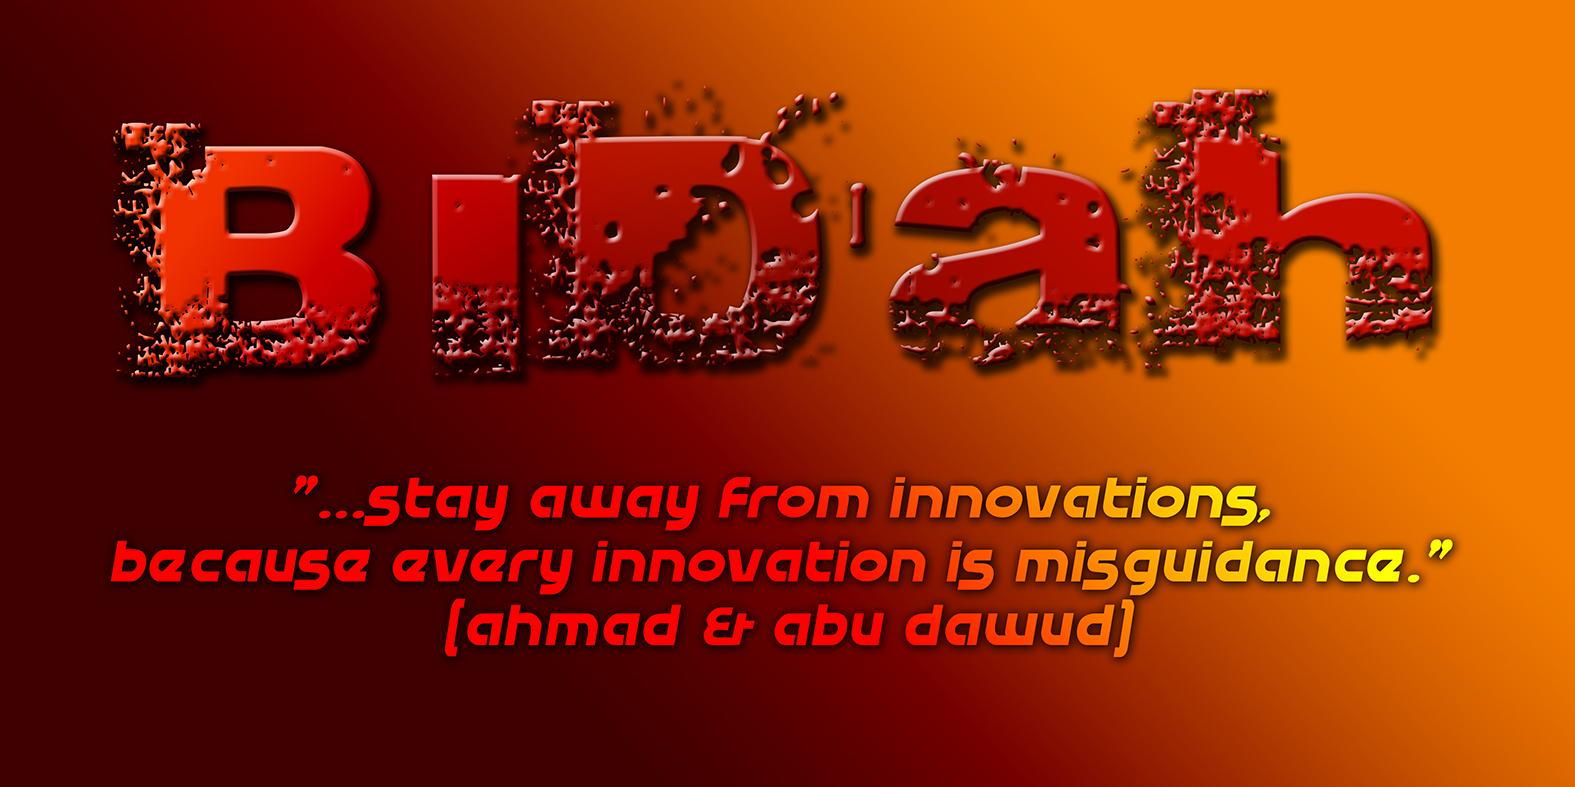 INNOVATION (BIDAT) IN ISLAM TYPES AND DEFINITION